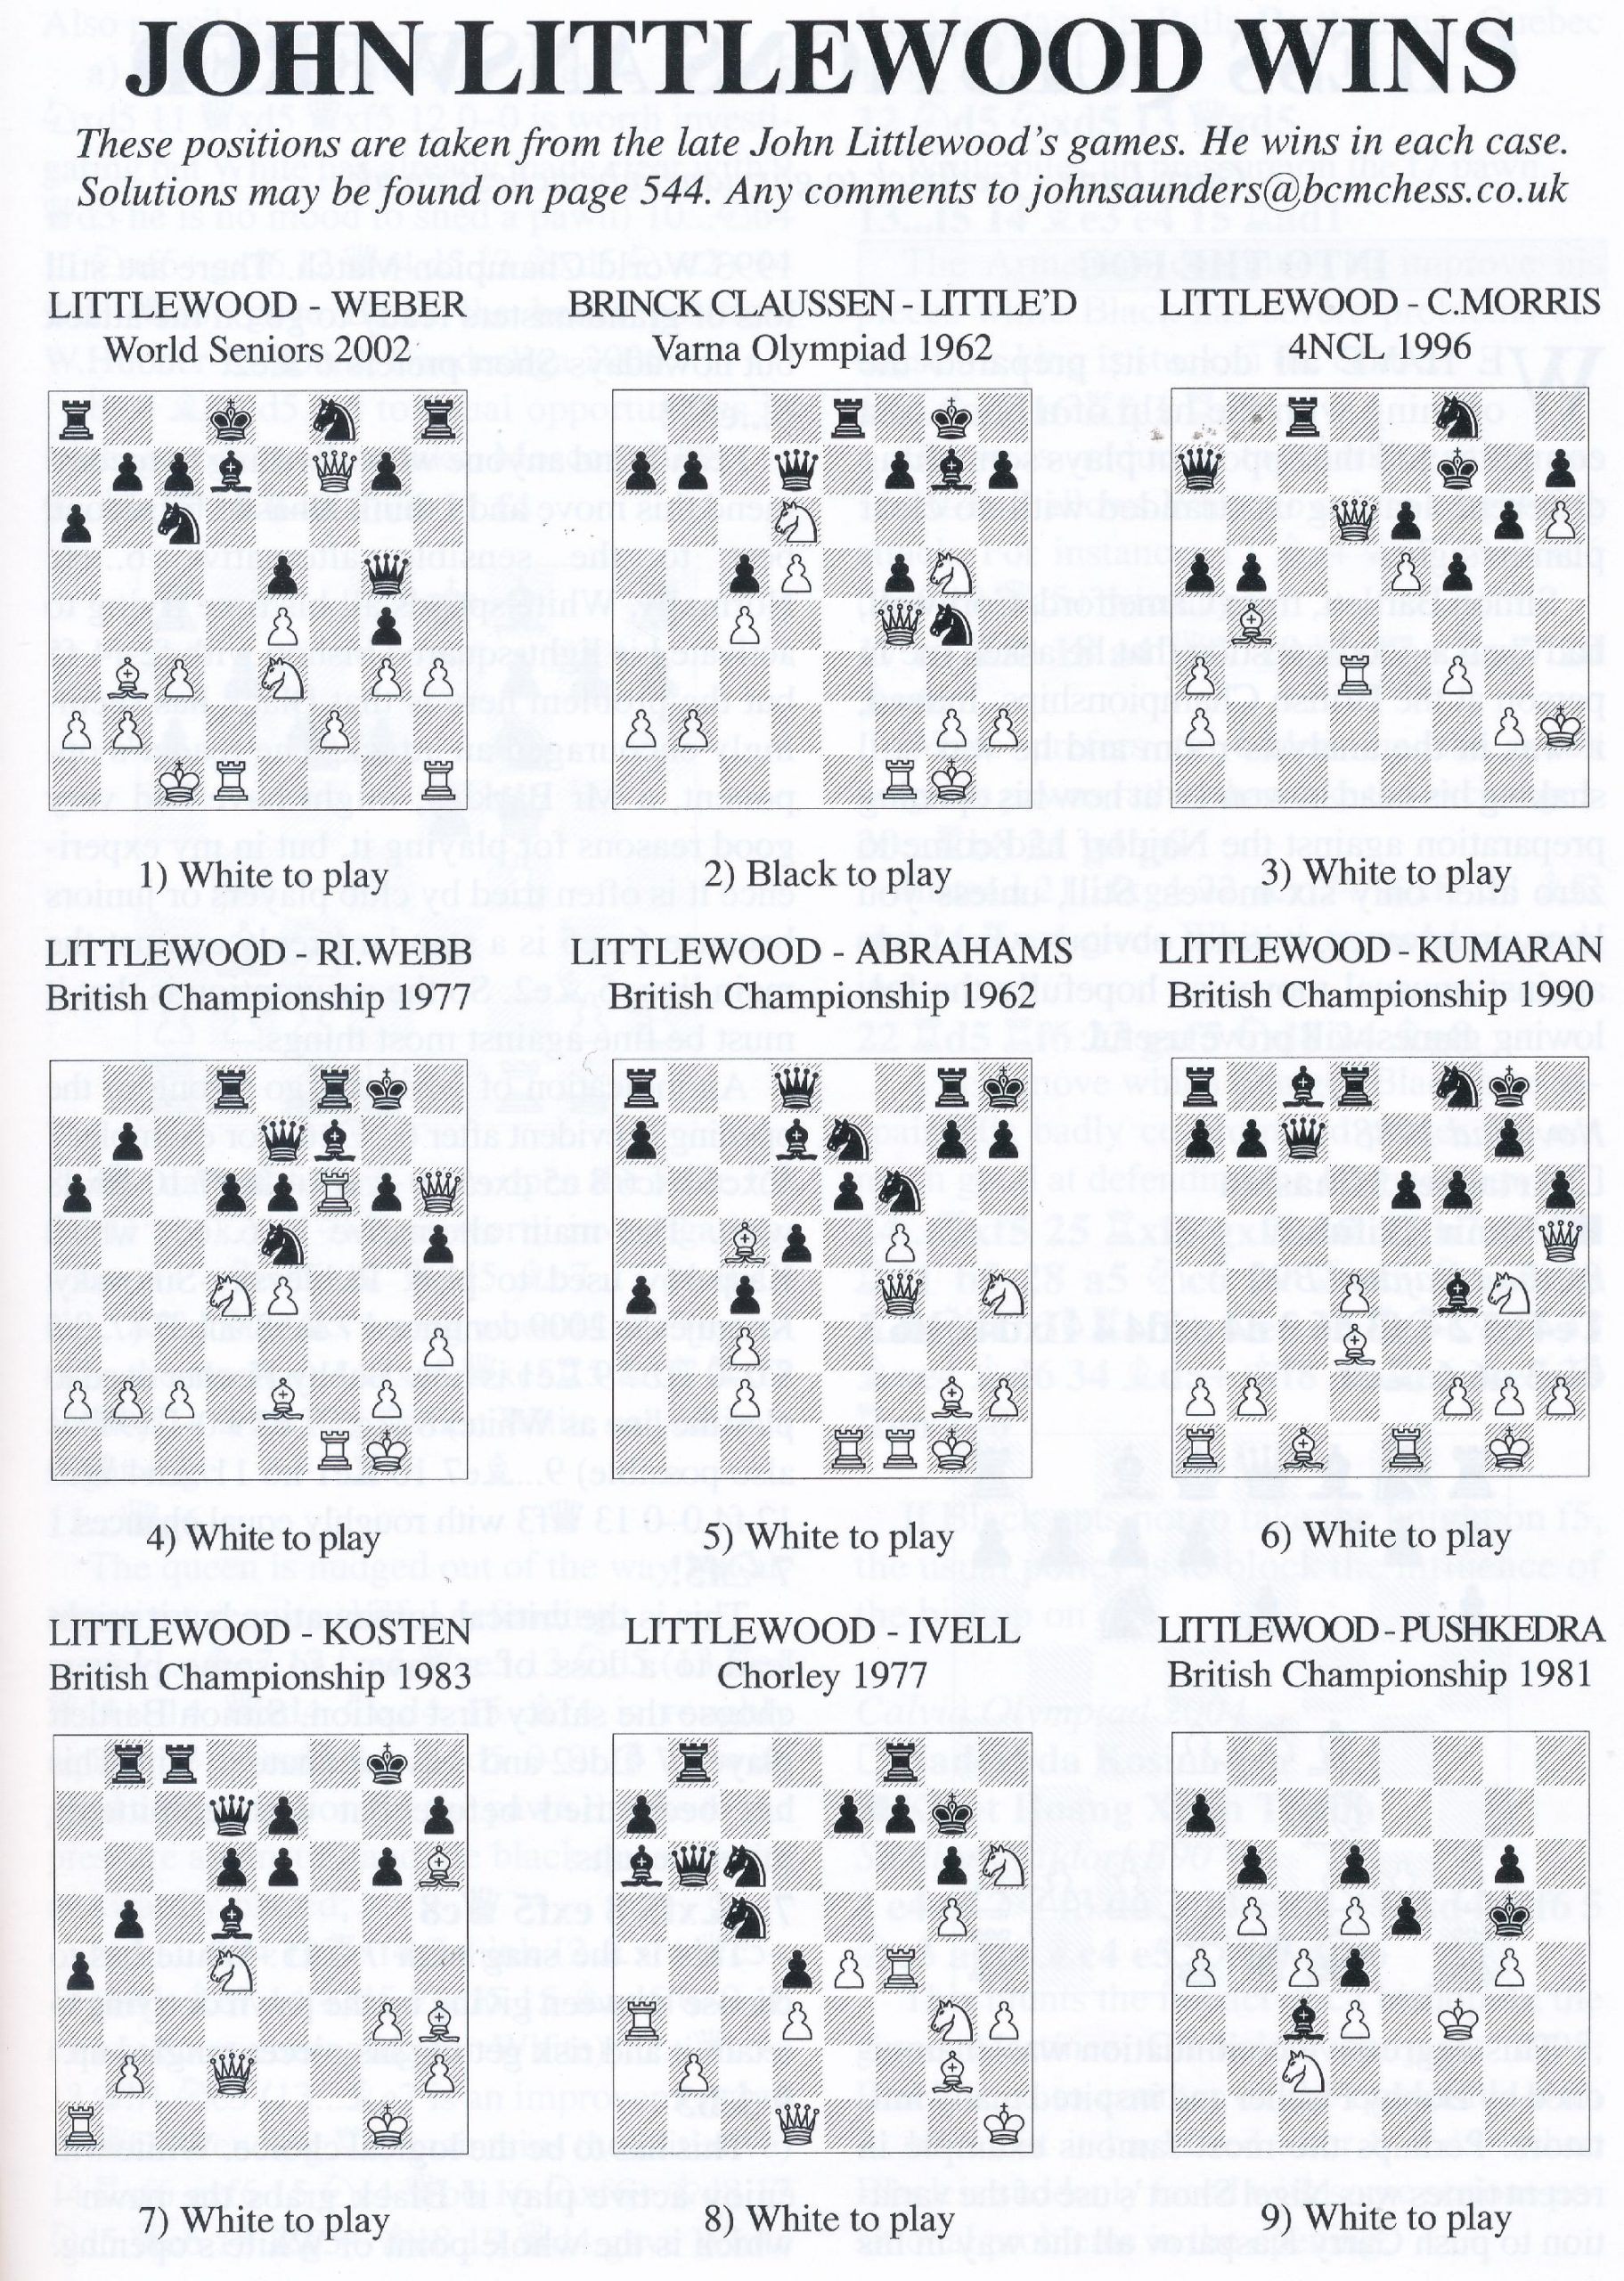 British Chess Magazine, Volume CXXIV (129), 2009, Number 10, October, page 545